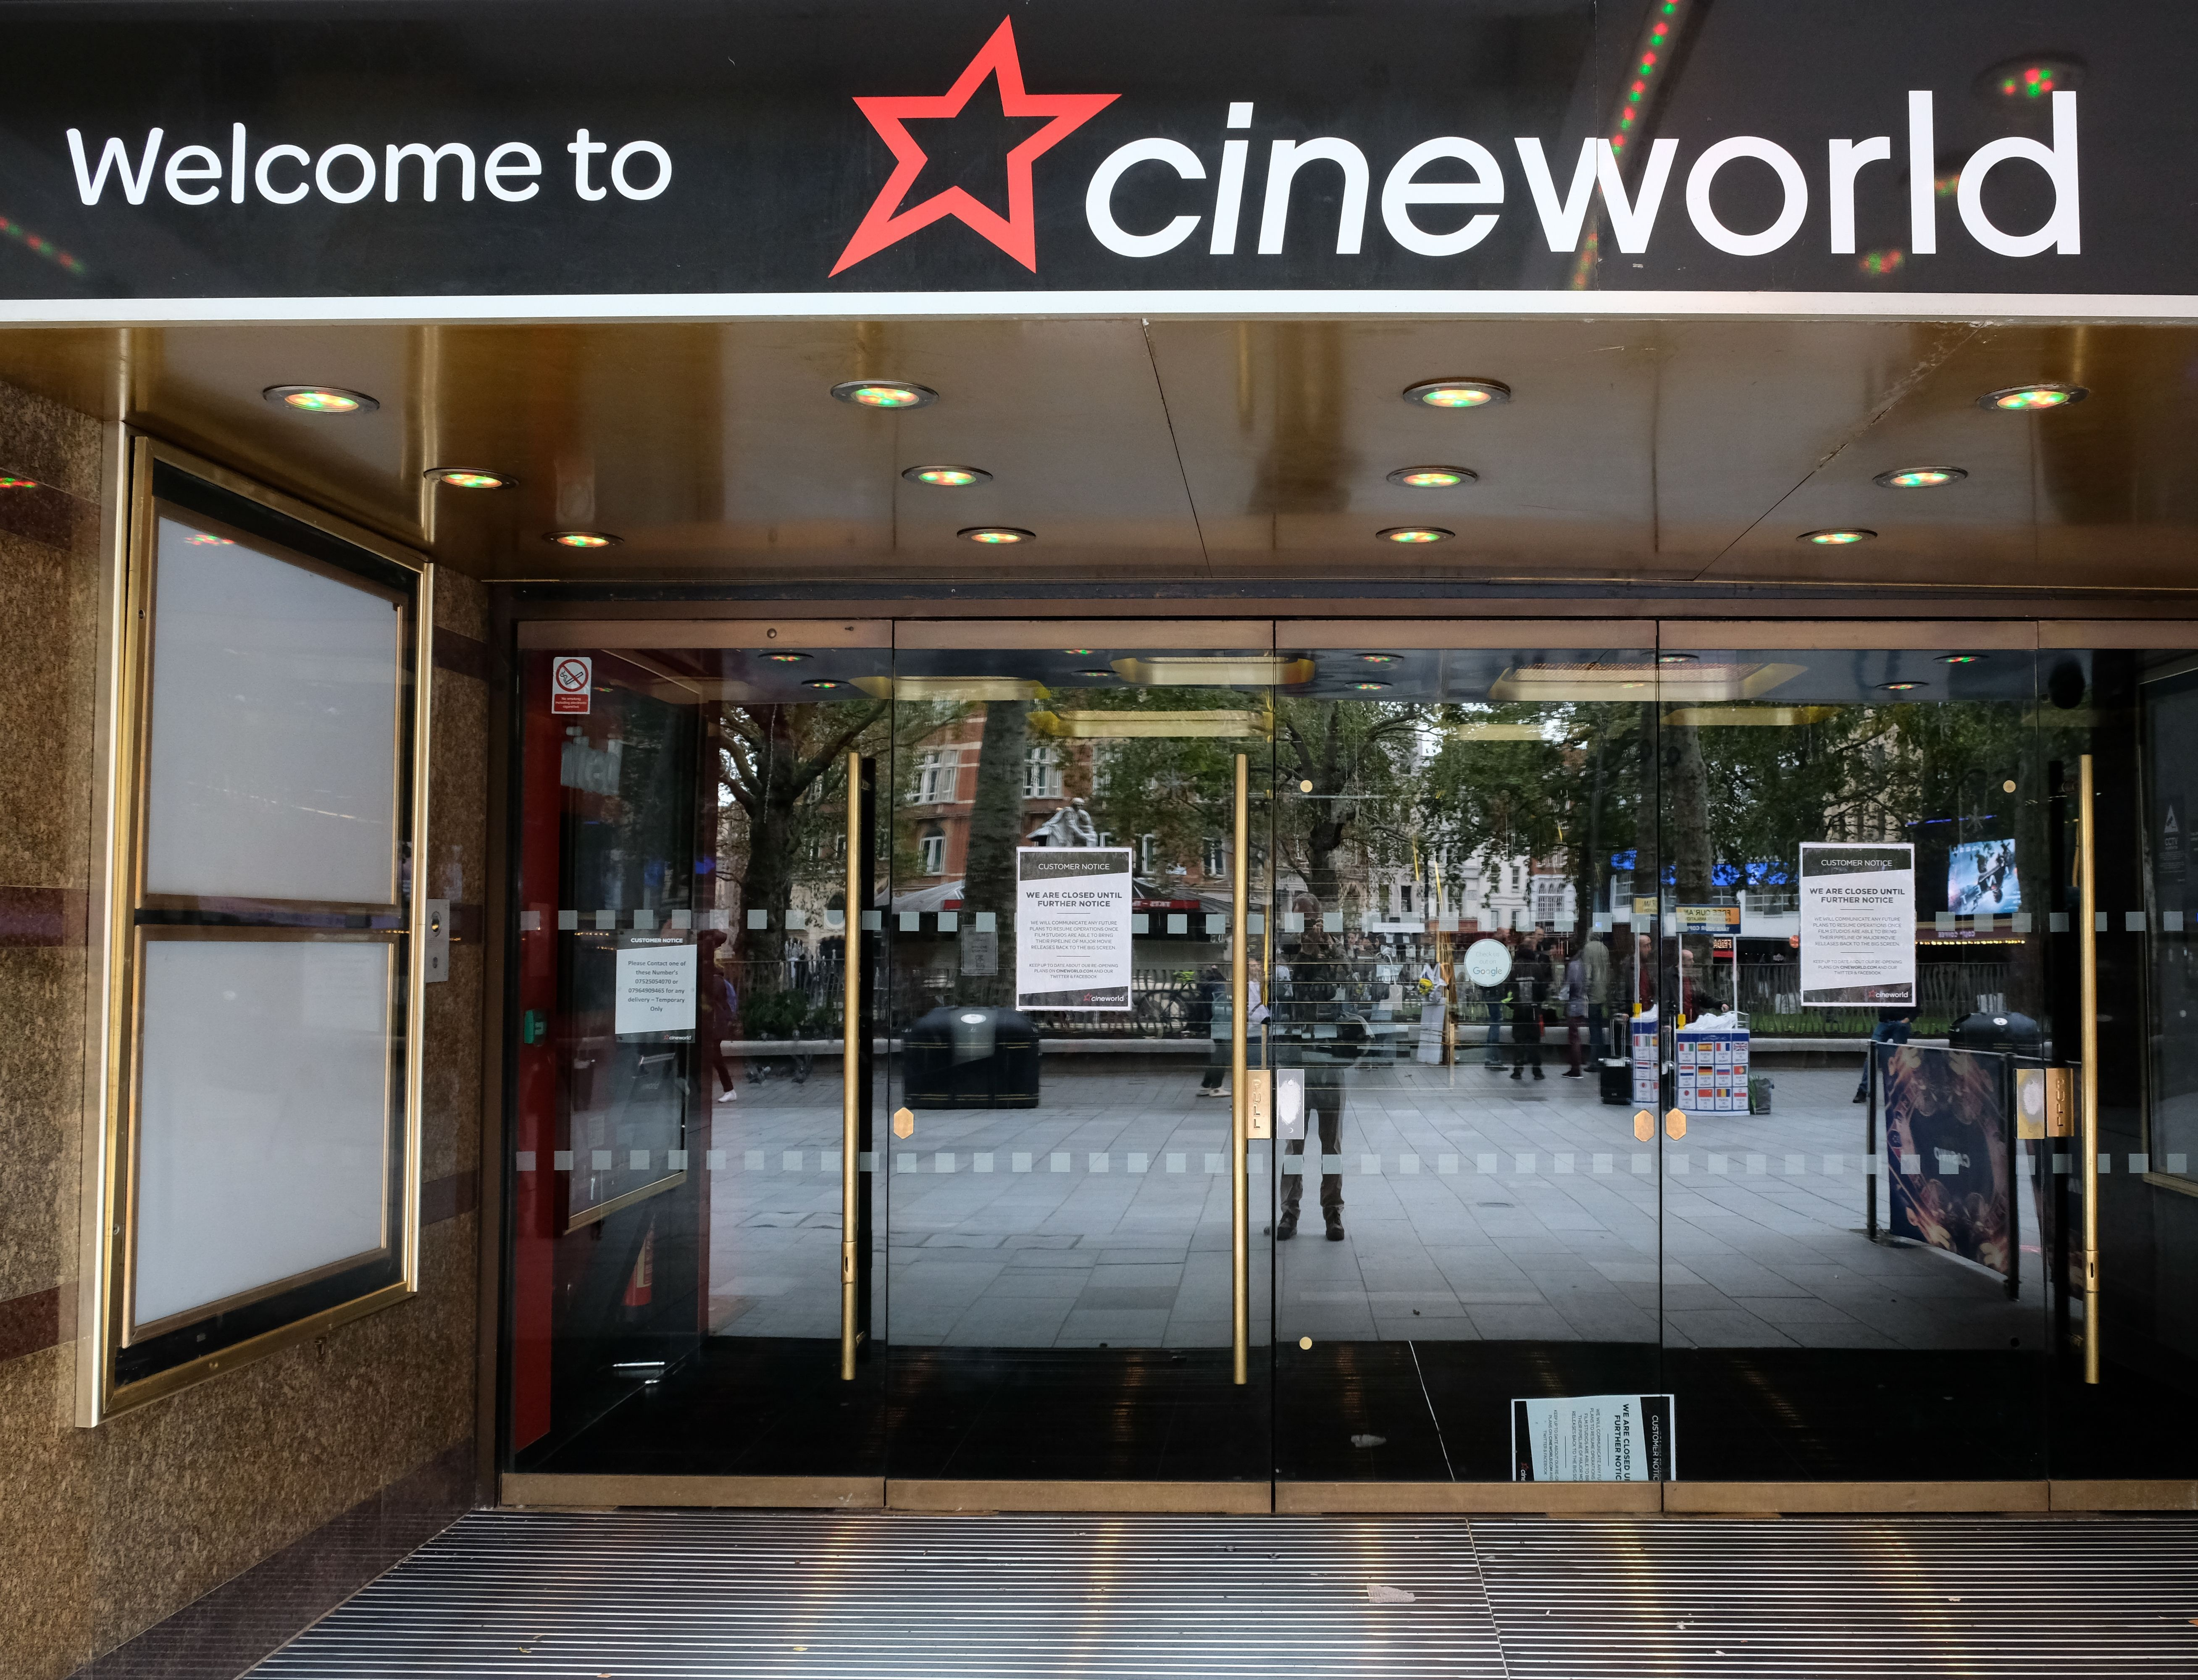 Cash-strapped cinemas to be hired by courts so juries can follow cases on the big screen